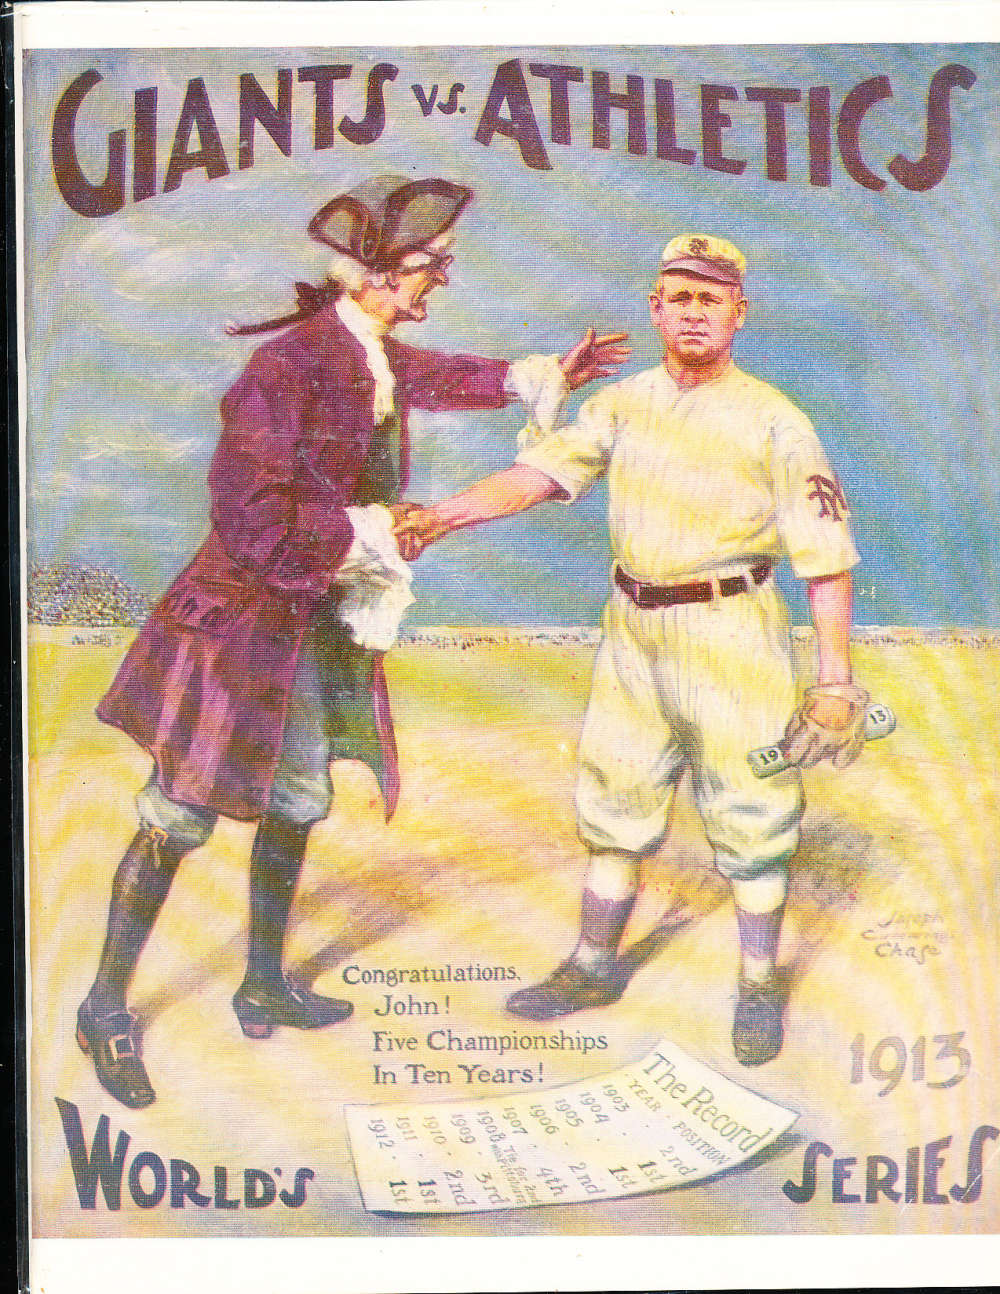 1913 Giants vs Athletics World Series Program NM Opie Reprint